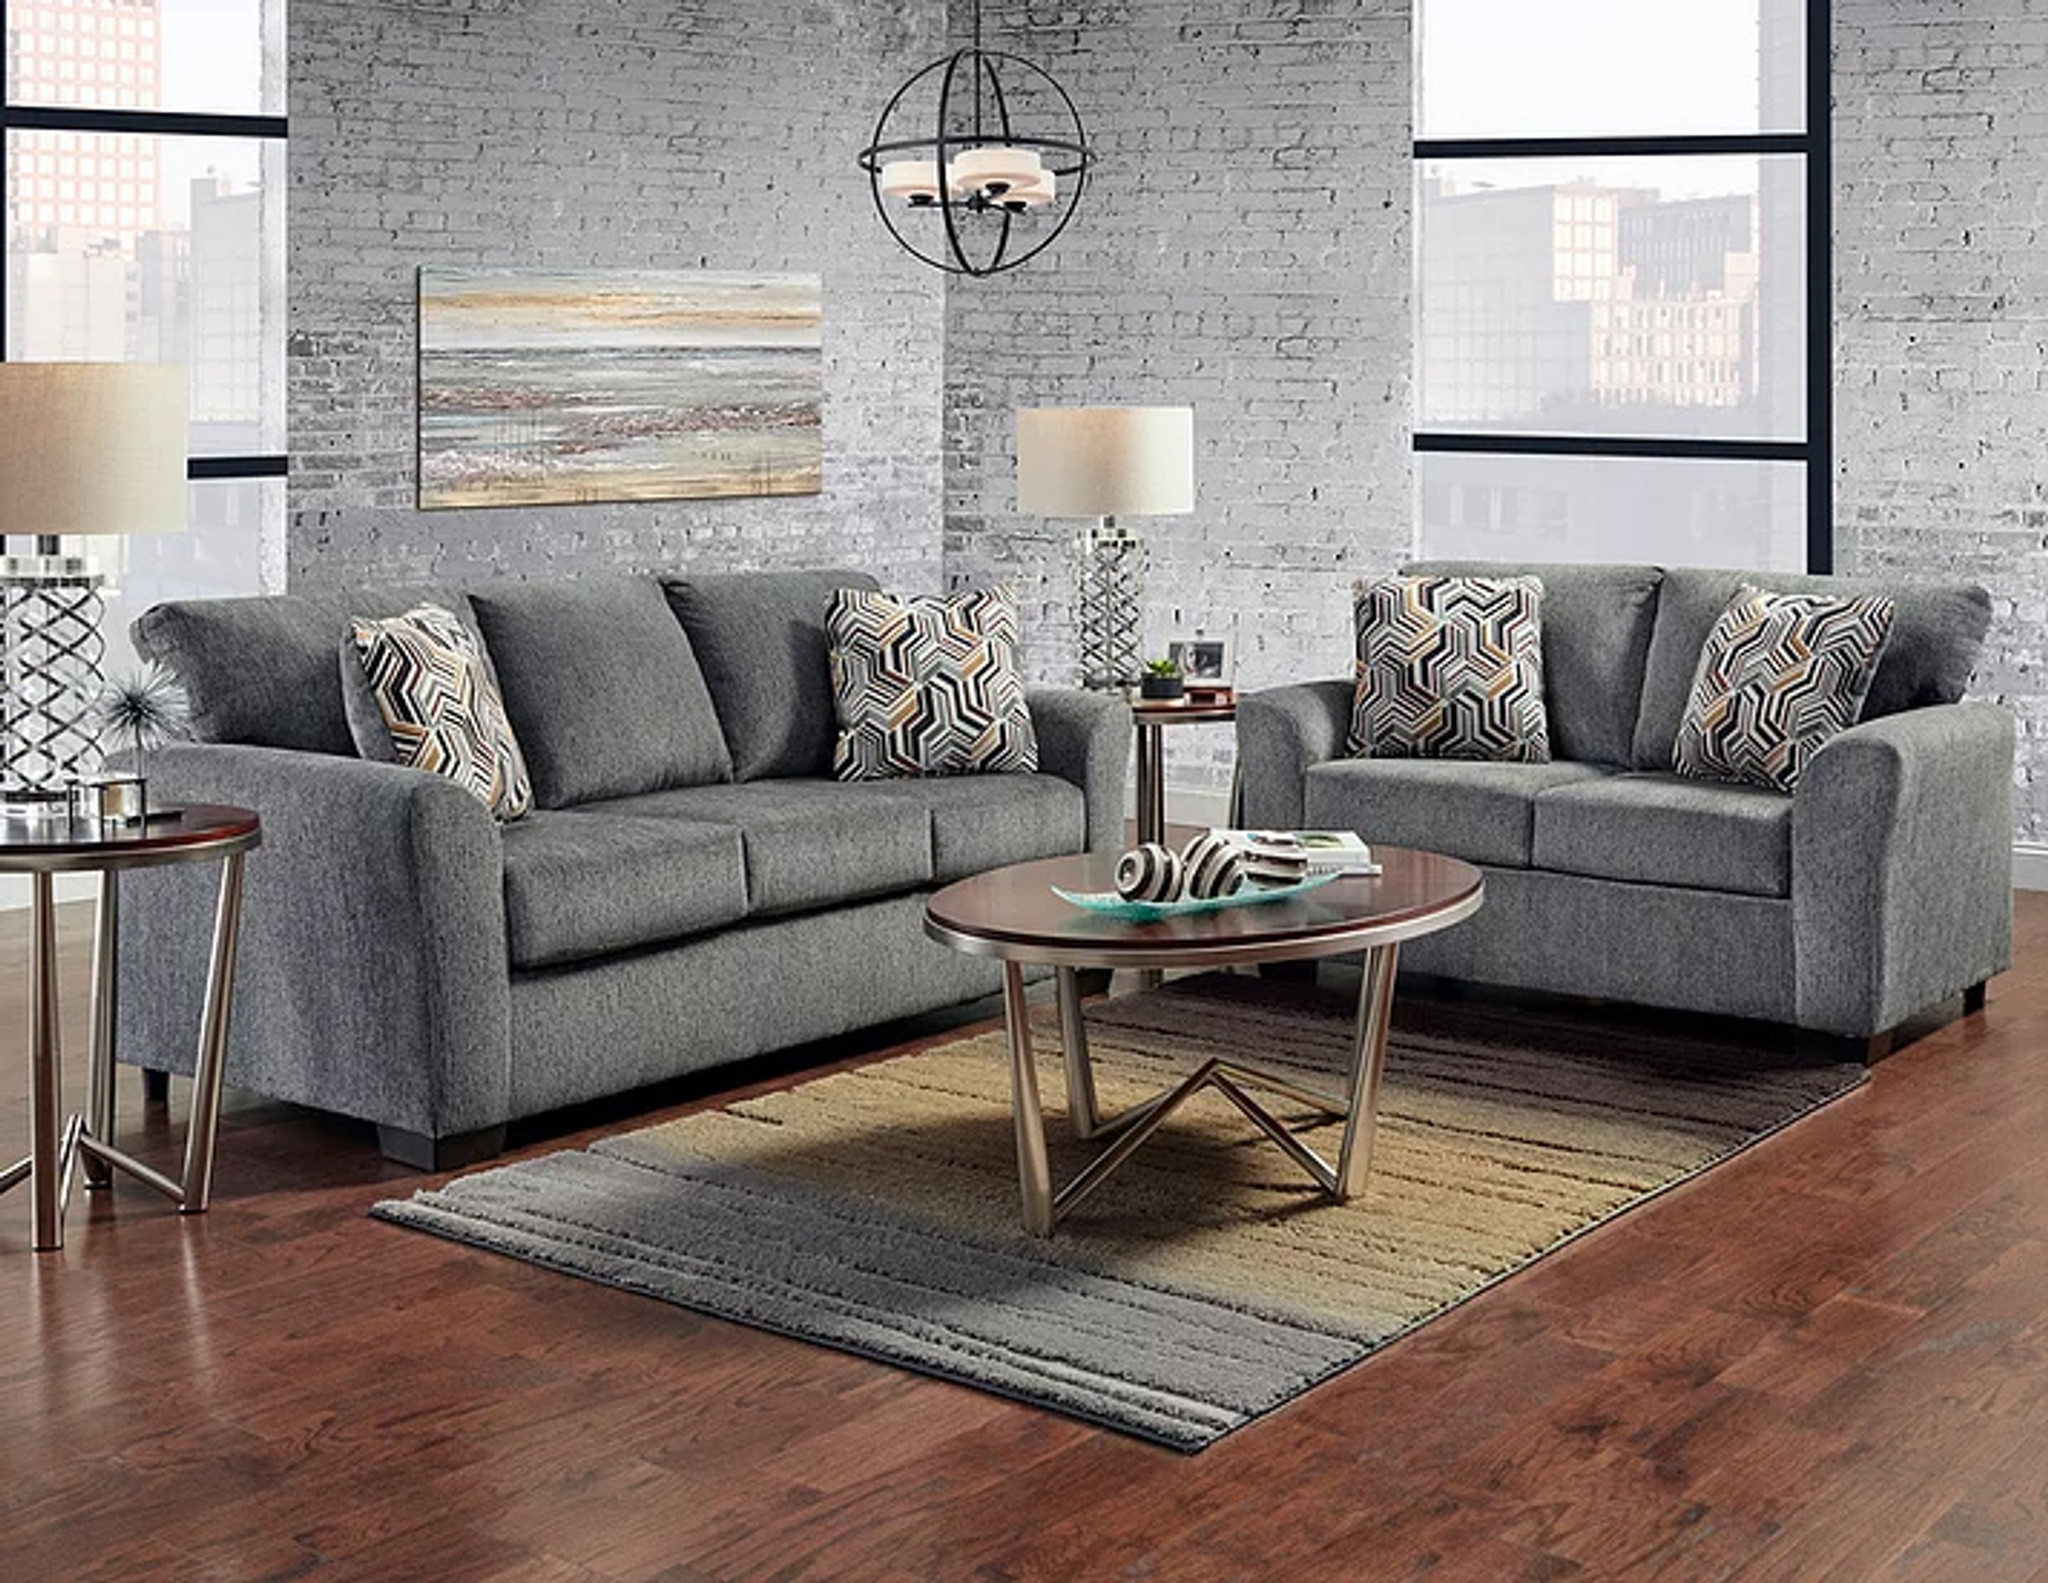 Fabulous 2 Pcs Allure Grey Sofa Loveseat Set Interior Design Ideas Clesiryabchikinfo